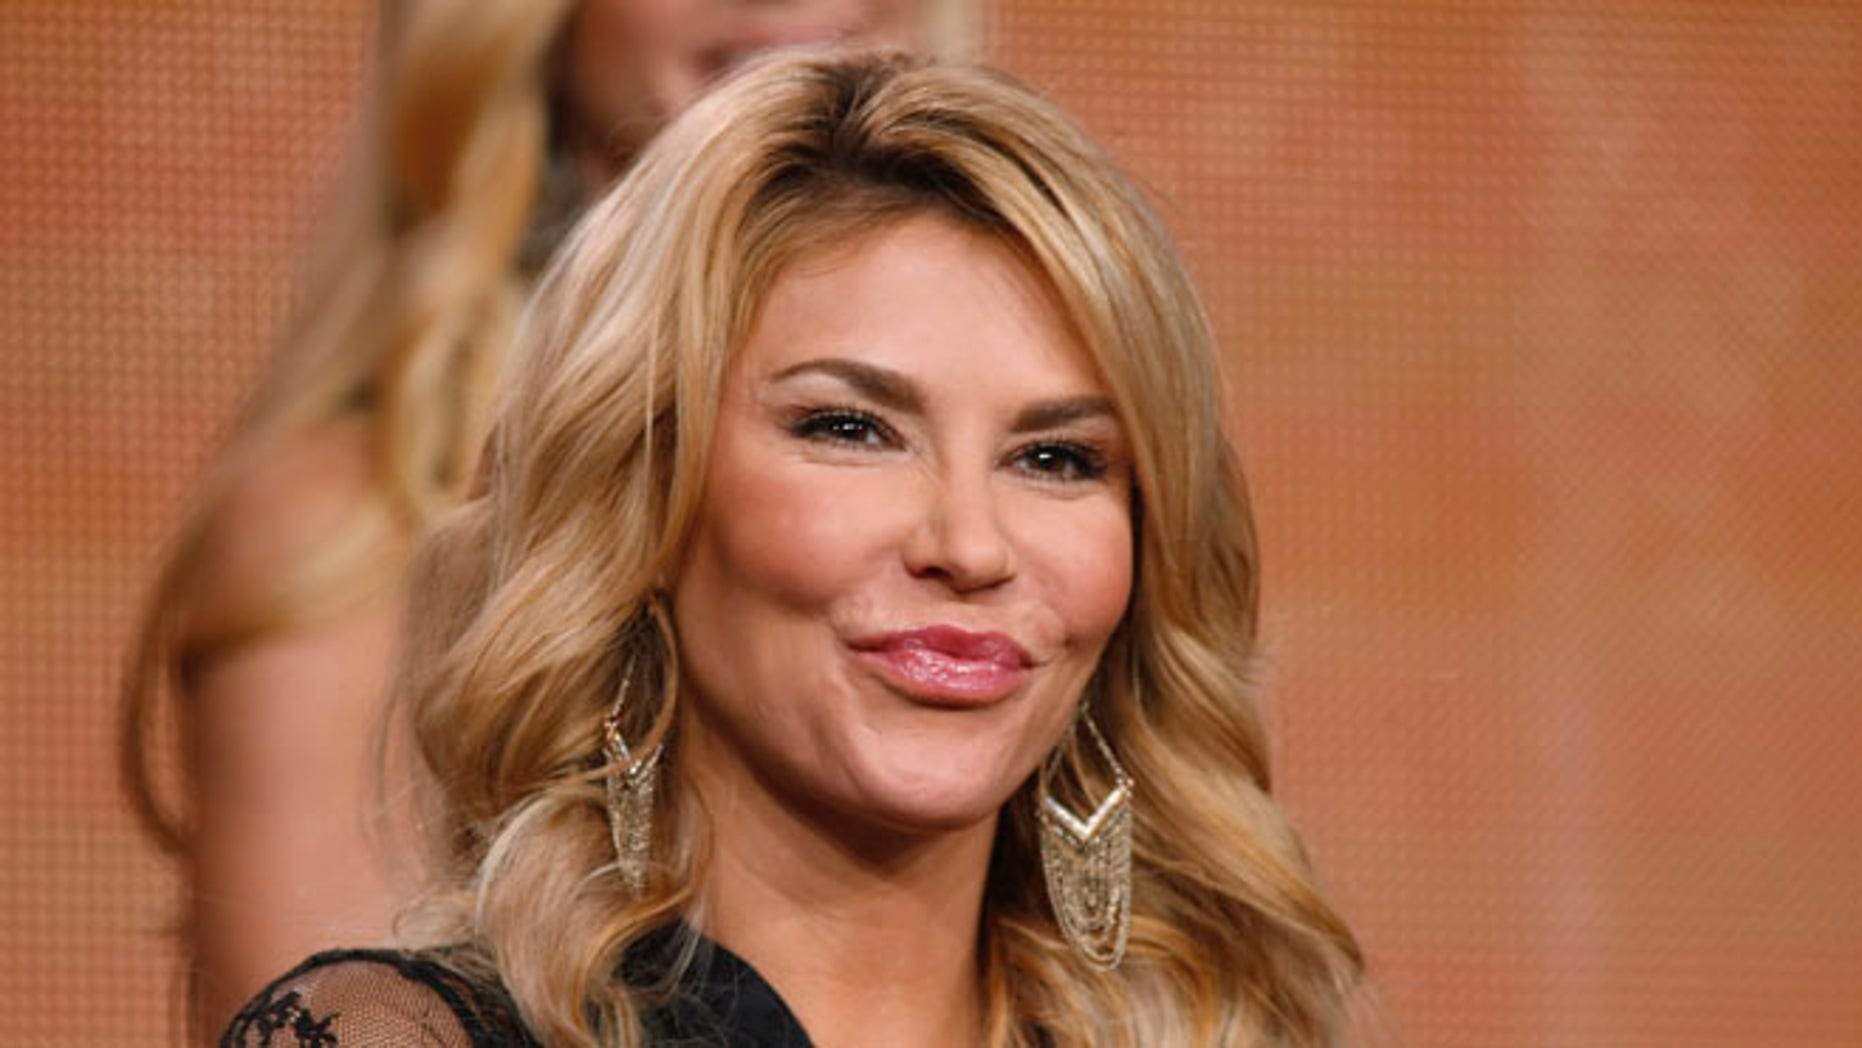 Reality star Brandi Glanville is reportedly dating someone she met on Tinder.